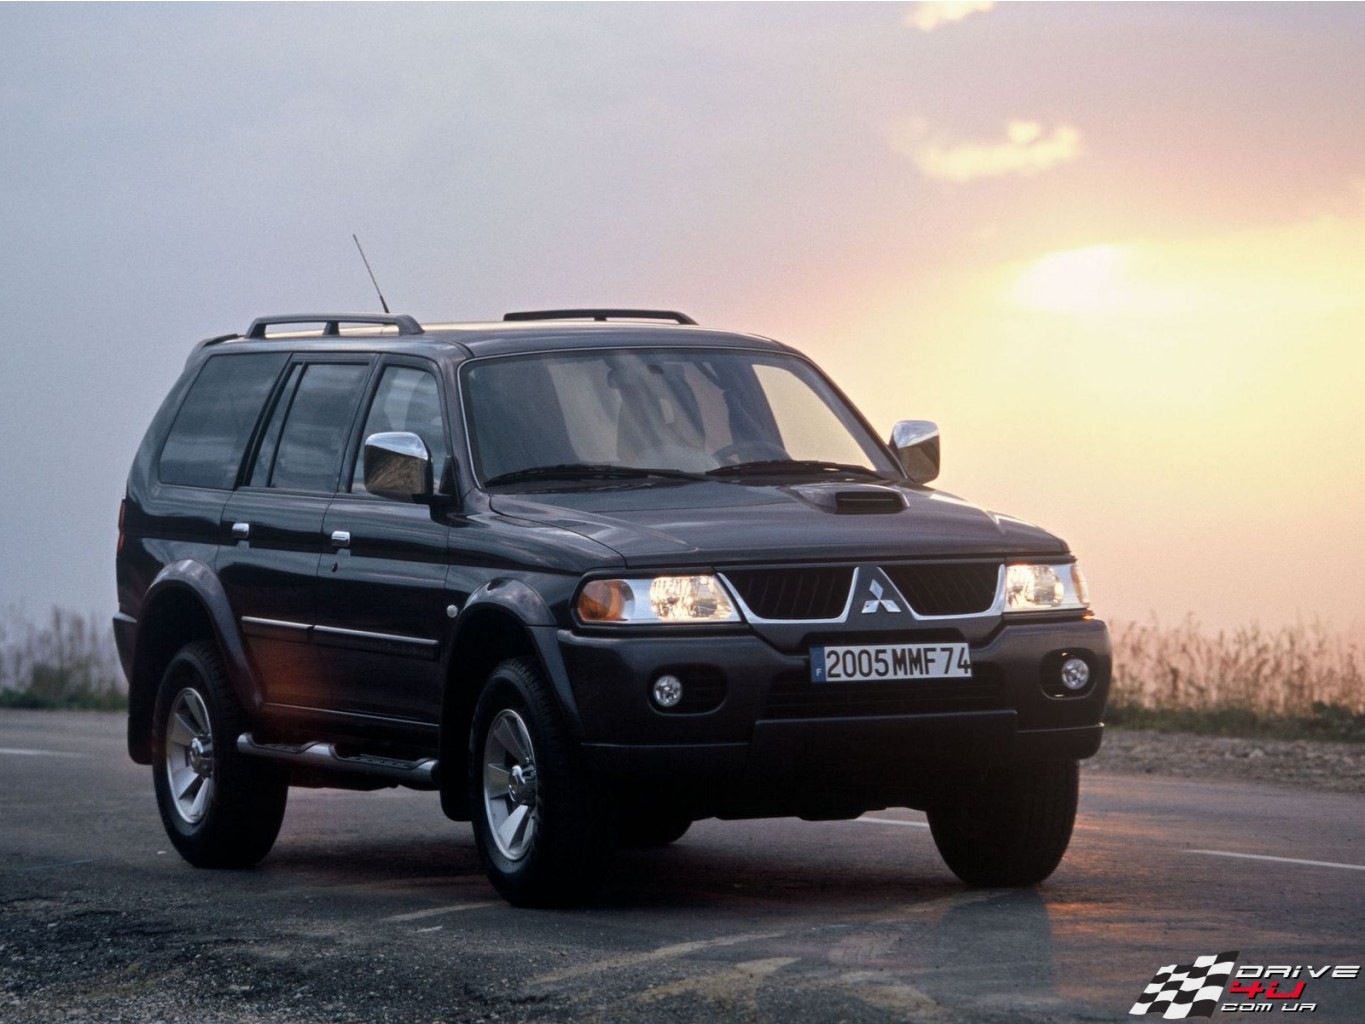 Pajero_Sport_night_wayx1600x1200.jpg